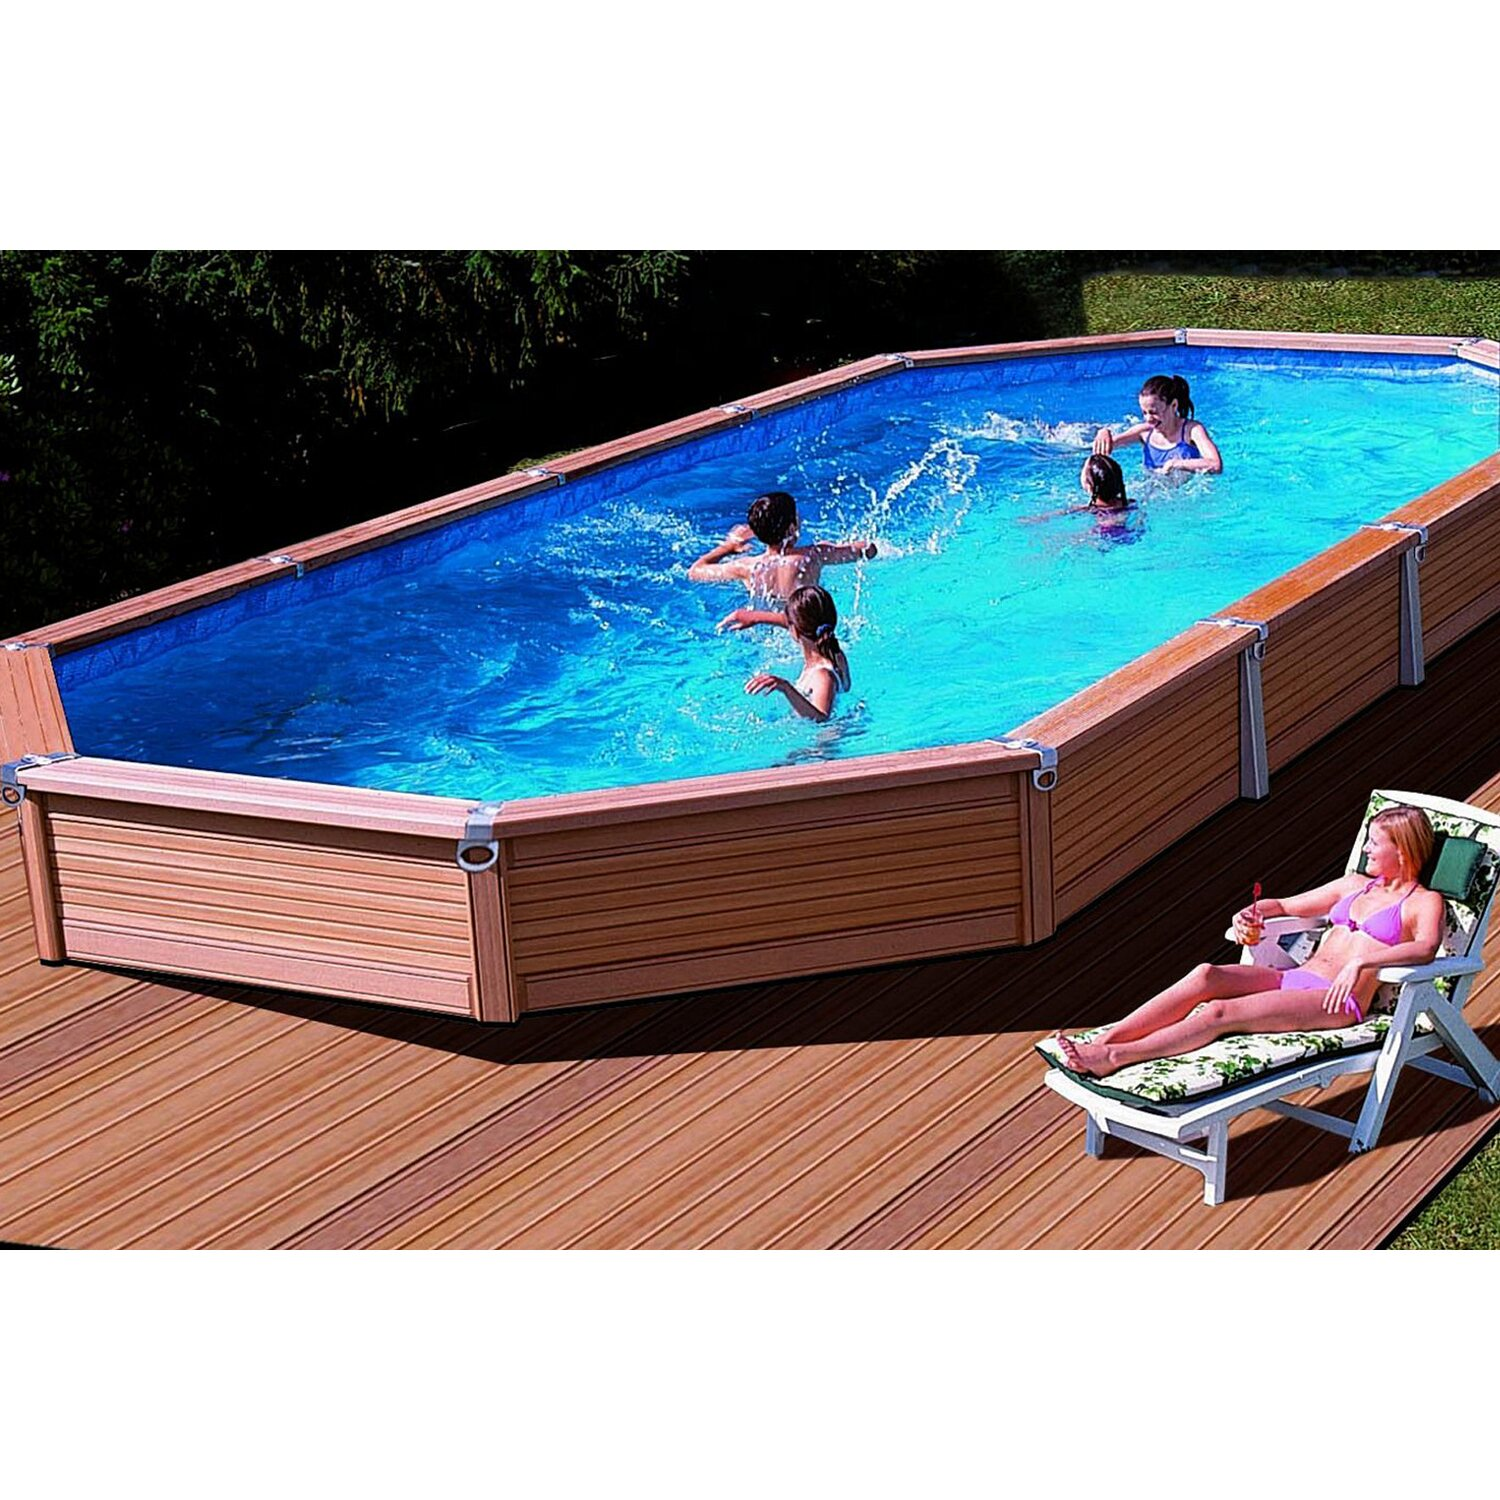 Summer fun pool set azteck rechteckbecken zum einbau 690 for Obi intex pool